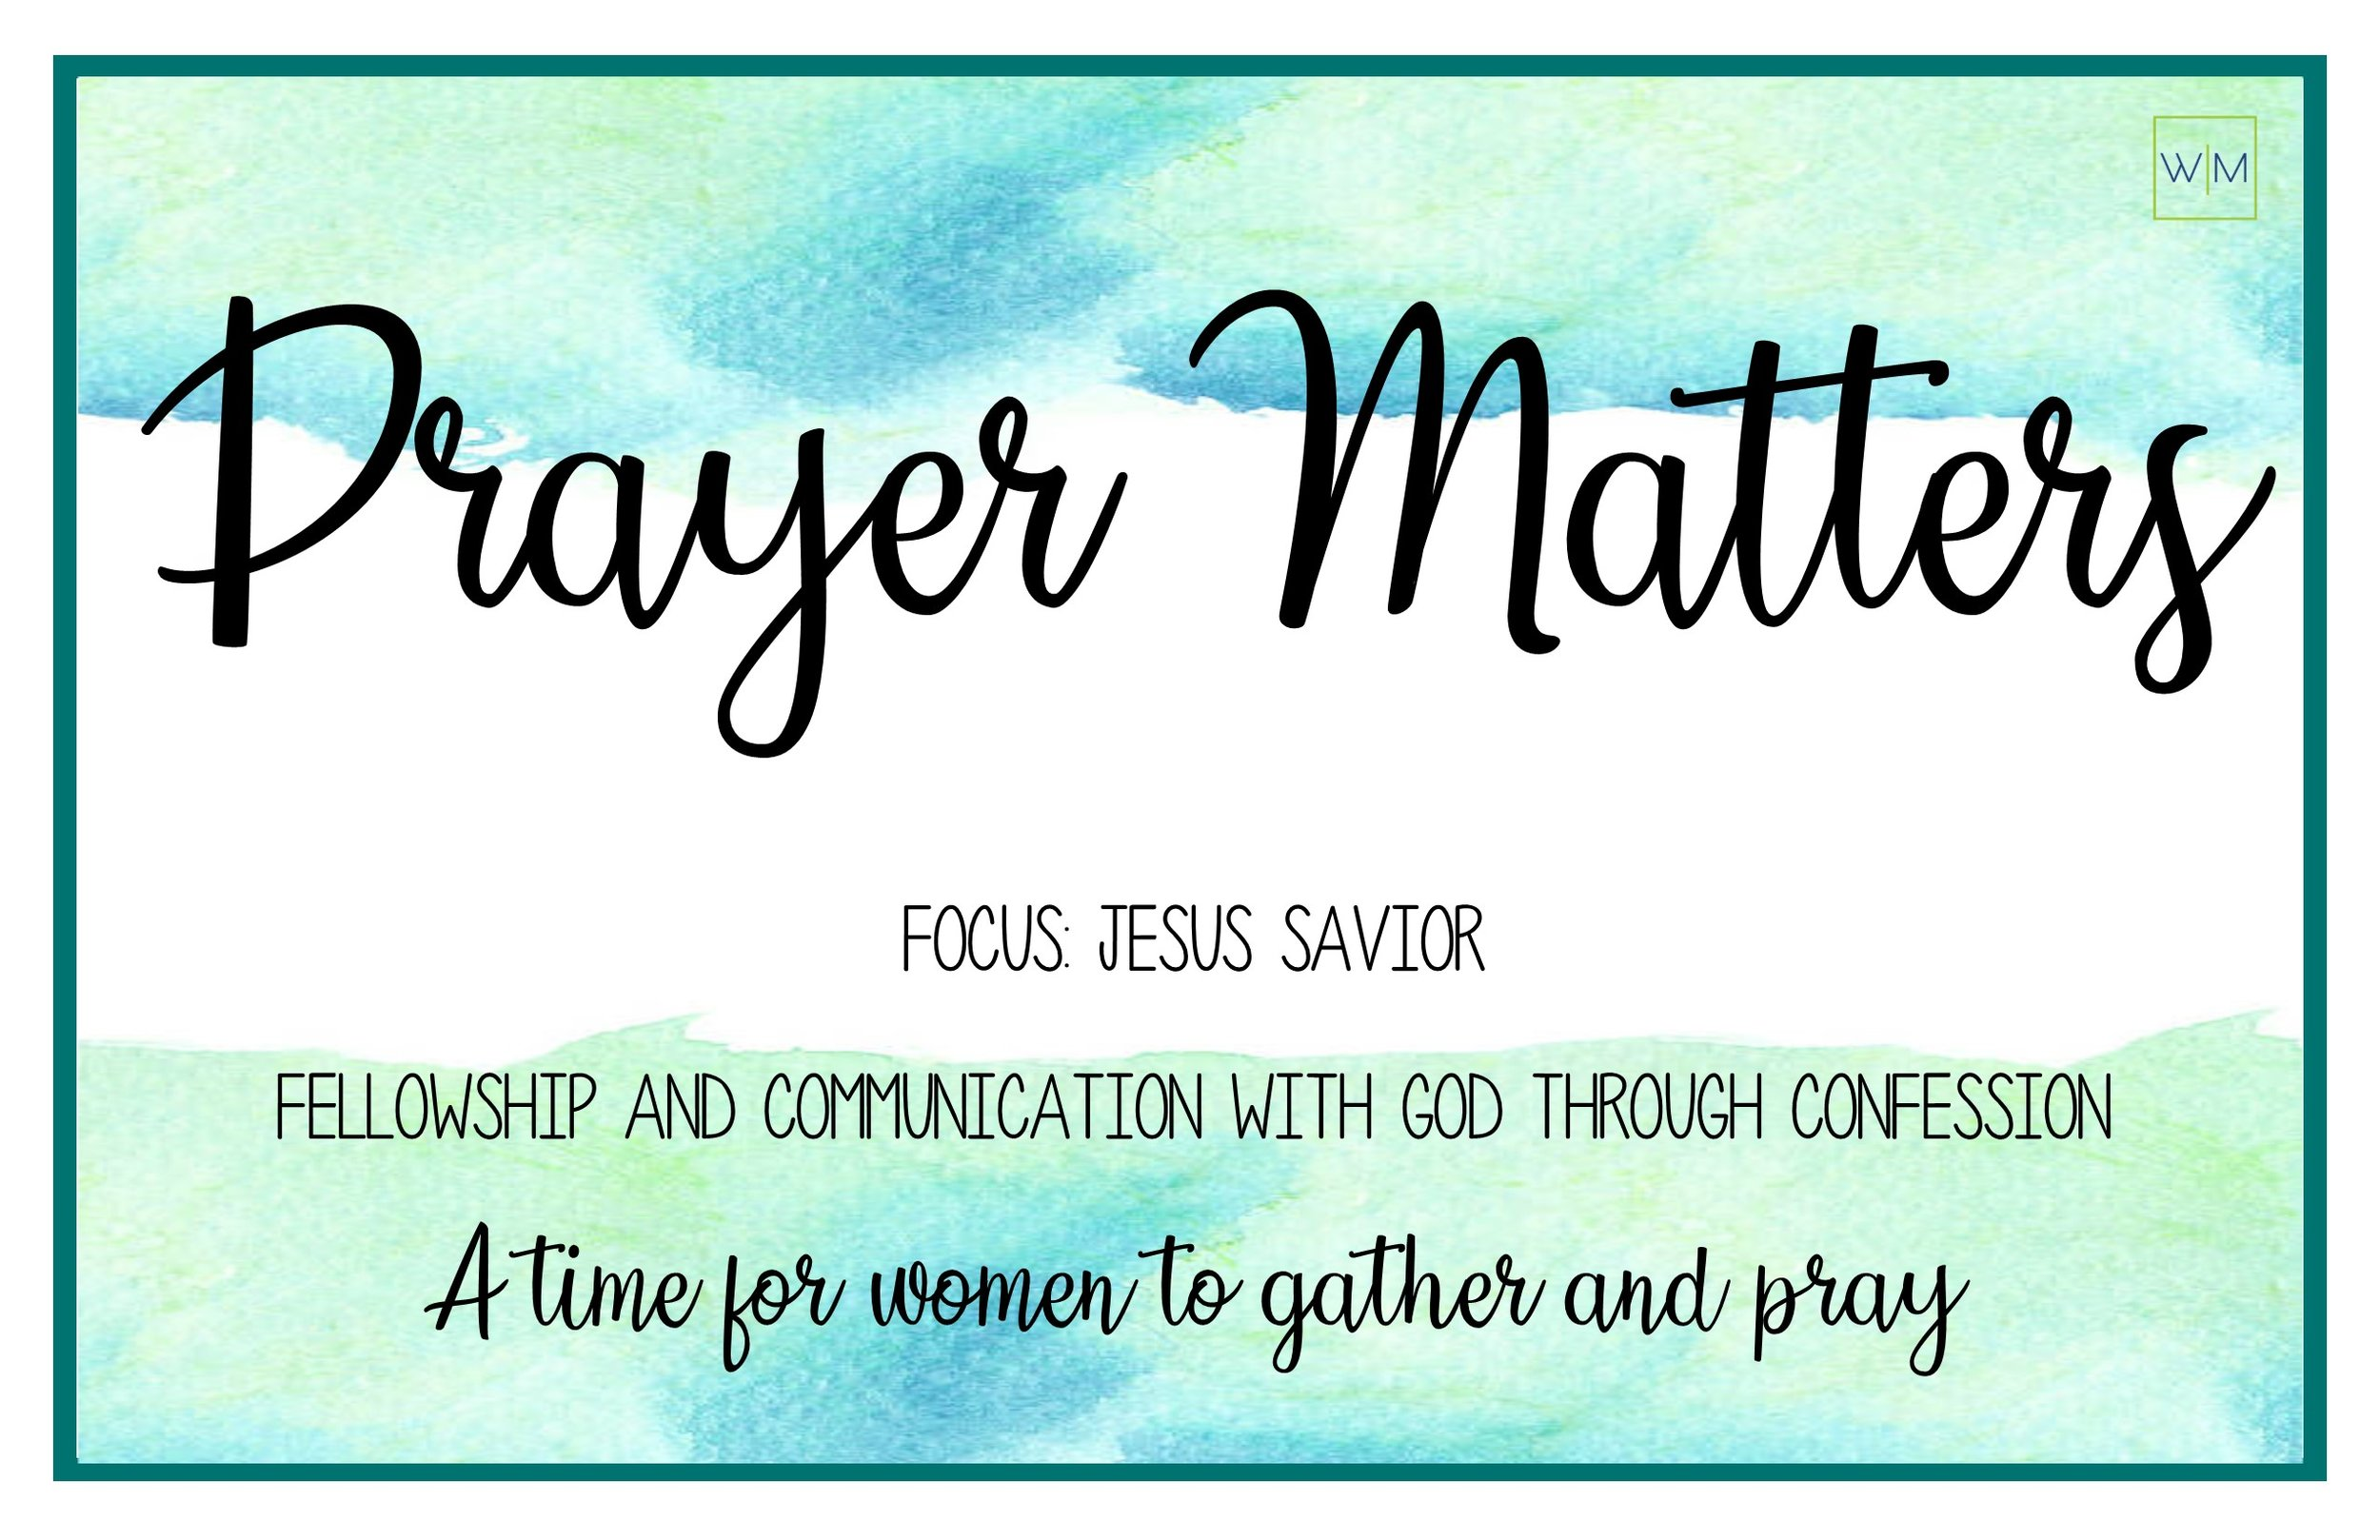 FebPrayer Matters_websitePoster.jpg